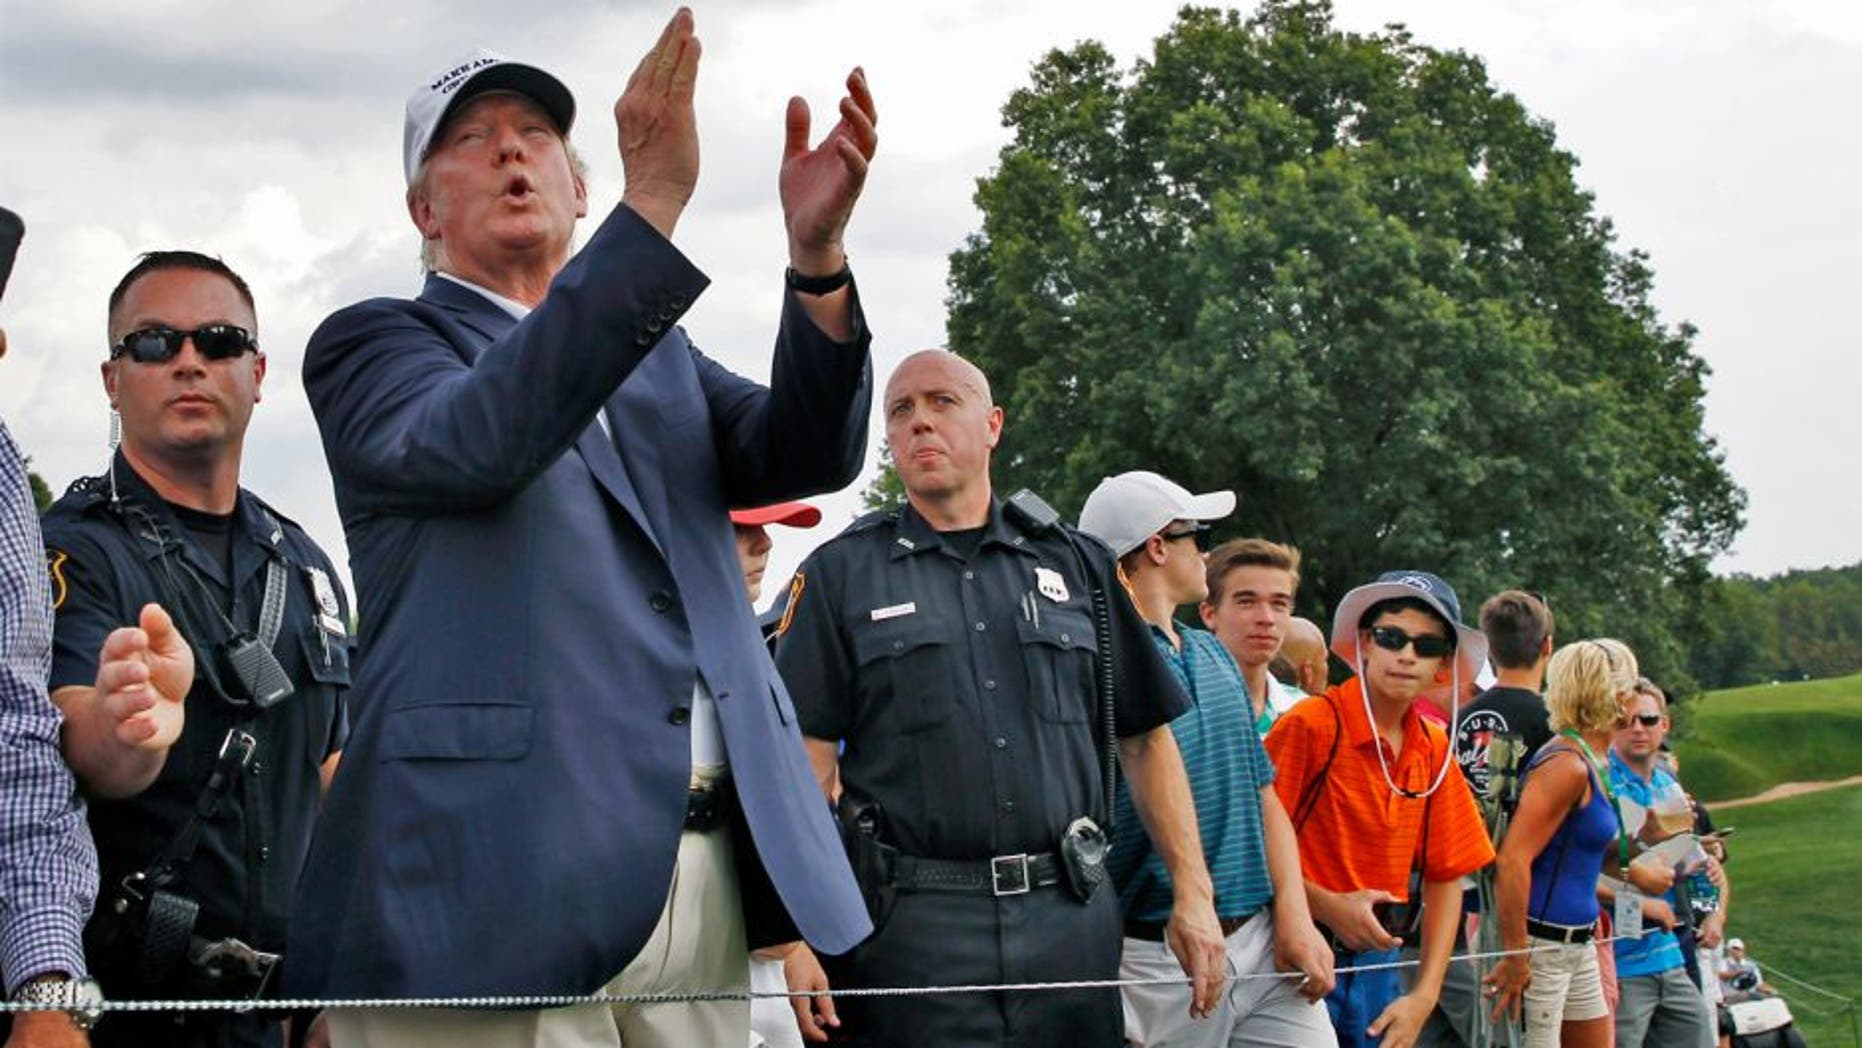 Republican presidential candidate Donald Trump, second left, applauds play as he walks with a crowd during the final round of play at The Barclays golf tournament Sunday, Aug. 30, 2015, in Edison, N.J. (AP Photo/Mel Evans)